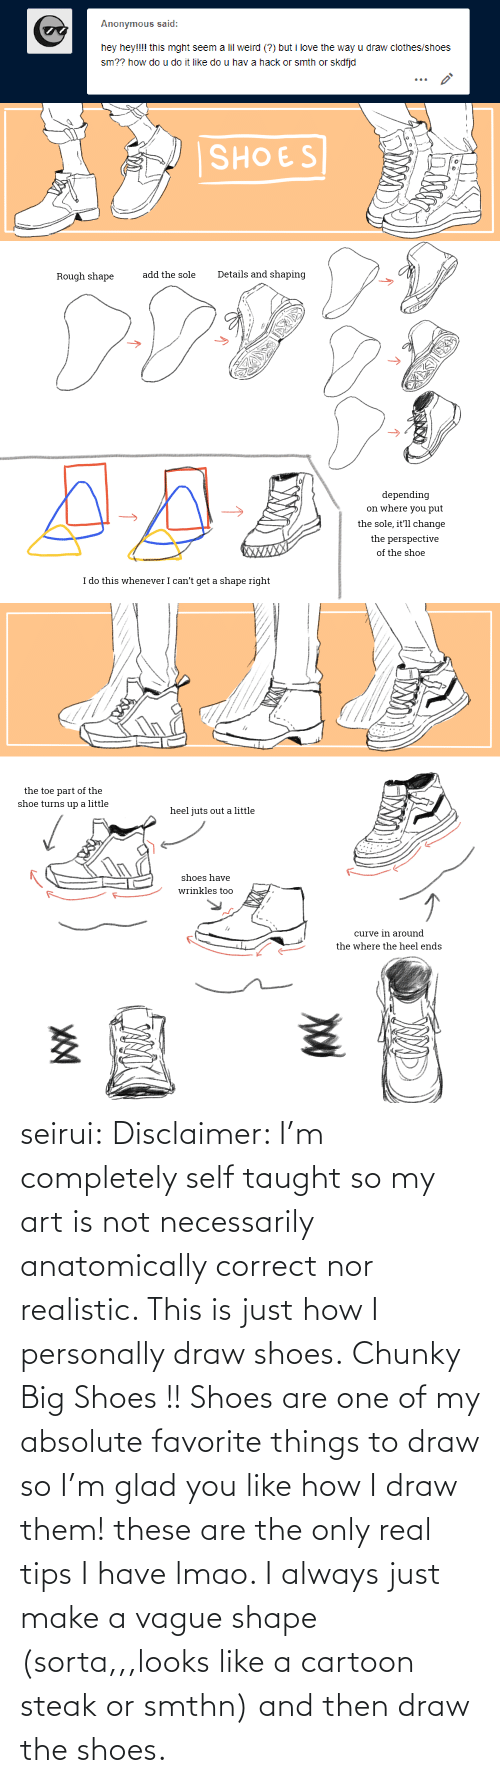 Rough: Anonymous said:  hey hey!!!! this mght seem a lil weird (?) but i love the way u draw clothes/shoes  sm?? how do u do it like do u hav a hack or smth or skdfjd   SHOES  Details and shaping  add the sole  Rough shape  depending  on where you put  the sole, it'll change  the perspective  XWXXX  of the shoe  I do this whenever I can't get a shape right   the toe part of the  shoe turns up a little  heel juts out a little  shoes have  wrinkles too  curve in around  the where the heel ends seirui: Disclaimer: I'm completely self taught so my art is not necessarily anatomically correct nor realistic. This is just how I personally draw shoes. Chunky Big Shoes !! Shoes are one of my absolute favorite things to draw so I'm glad you like how I draw them! these are the only real tips I have lmao. I always just make a vague shape (sorta,,,looks like a cartoon steak or smthn) and then draw the shoes.